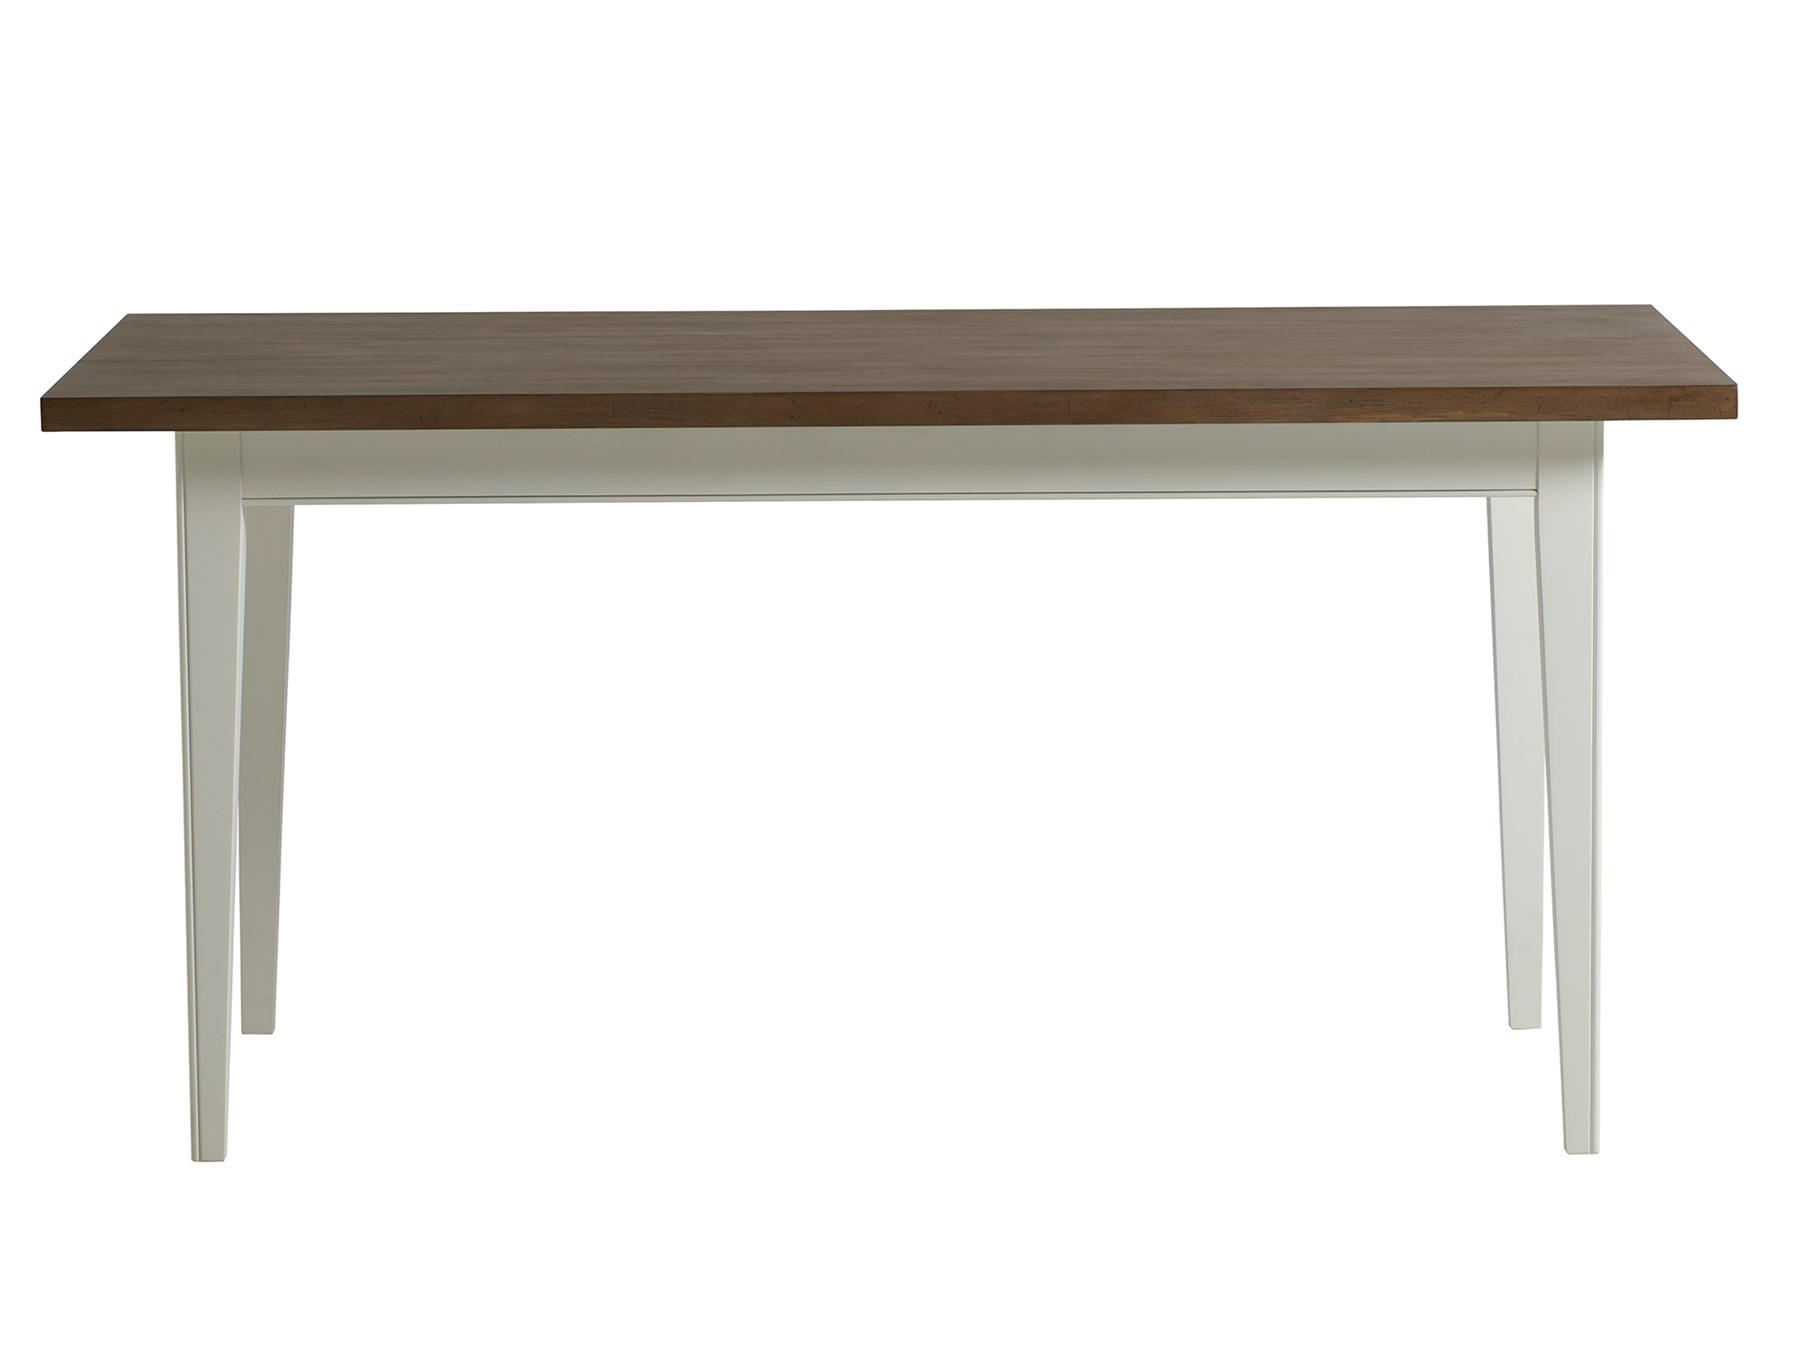 Chipper Table